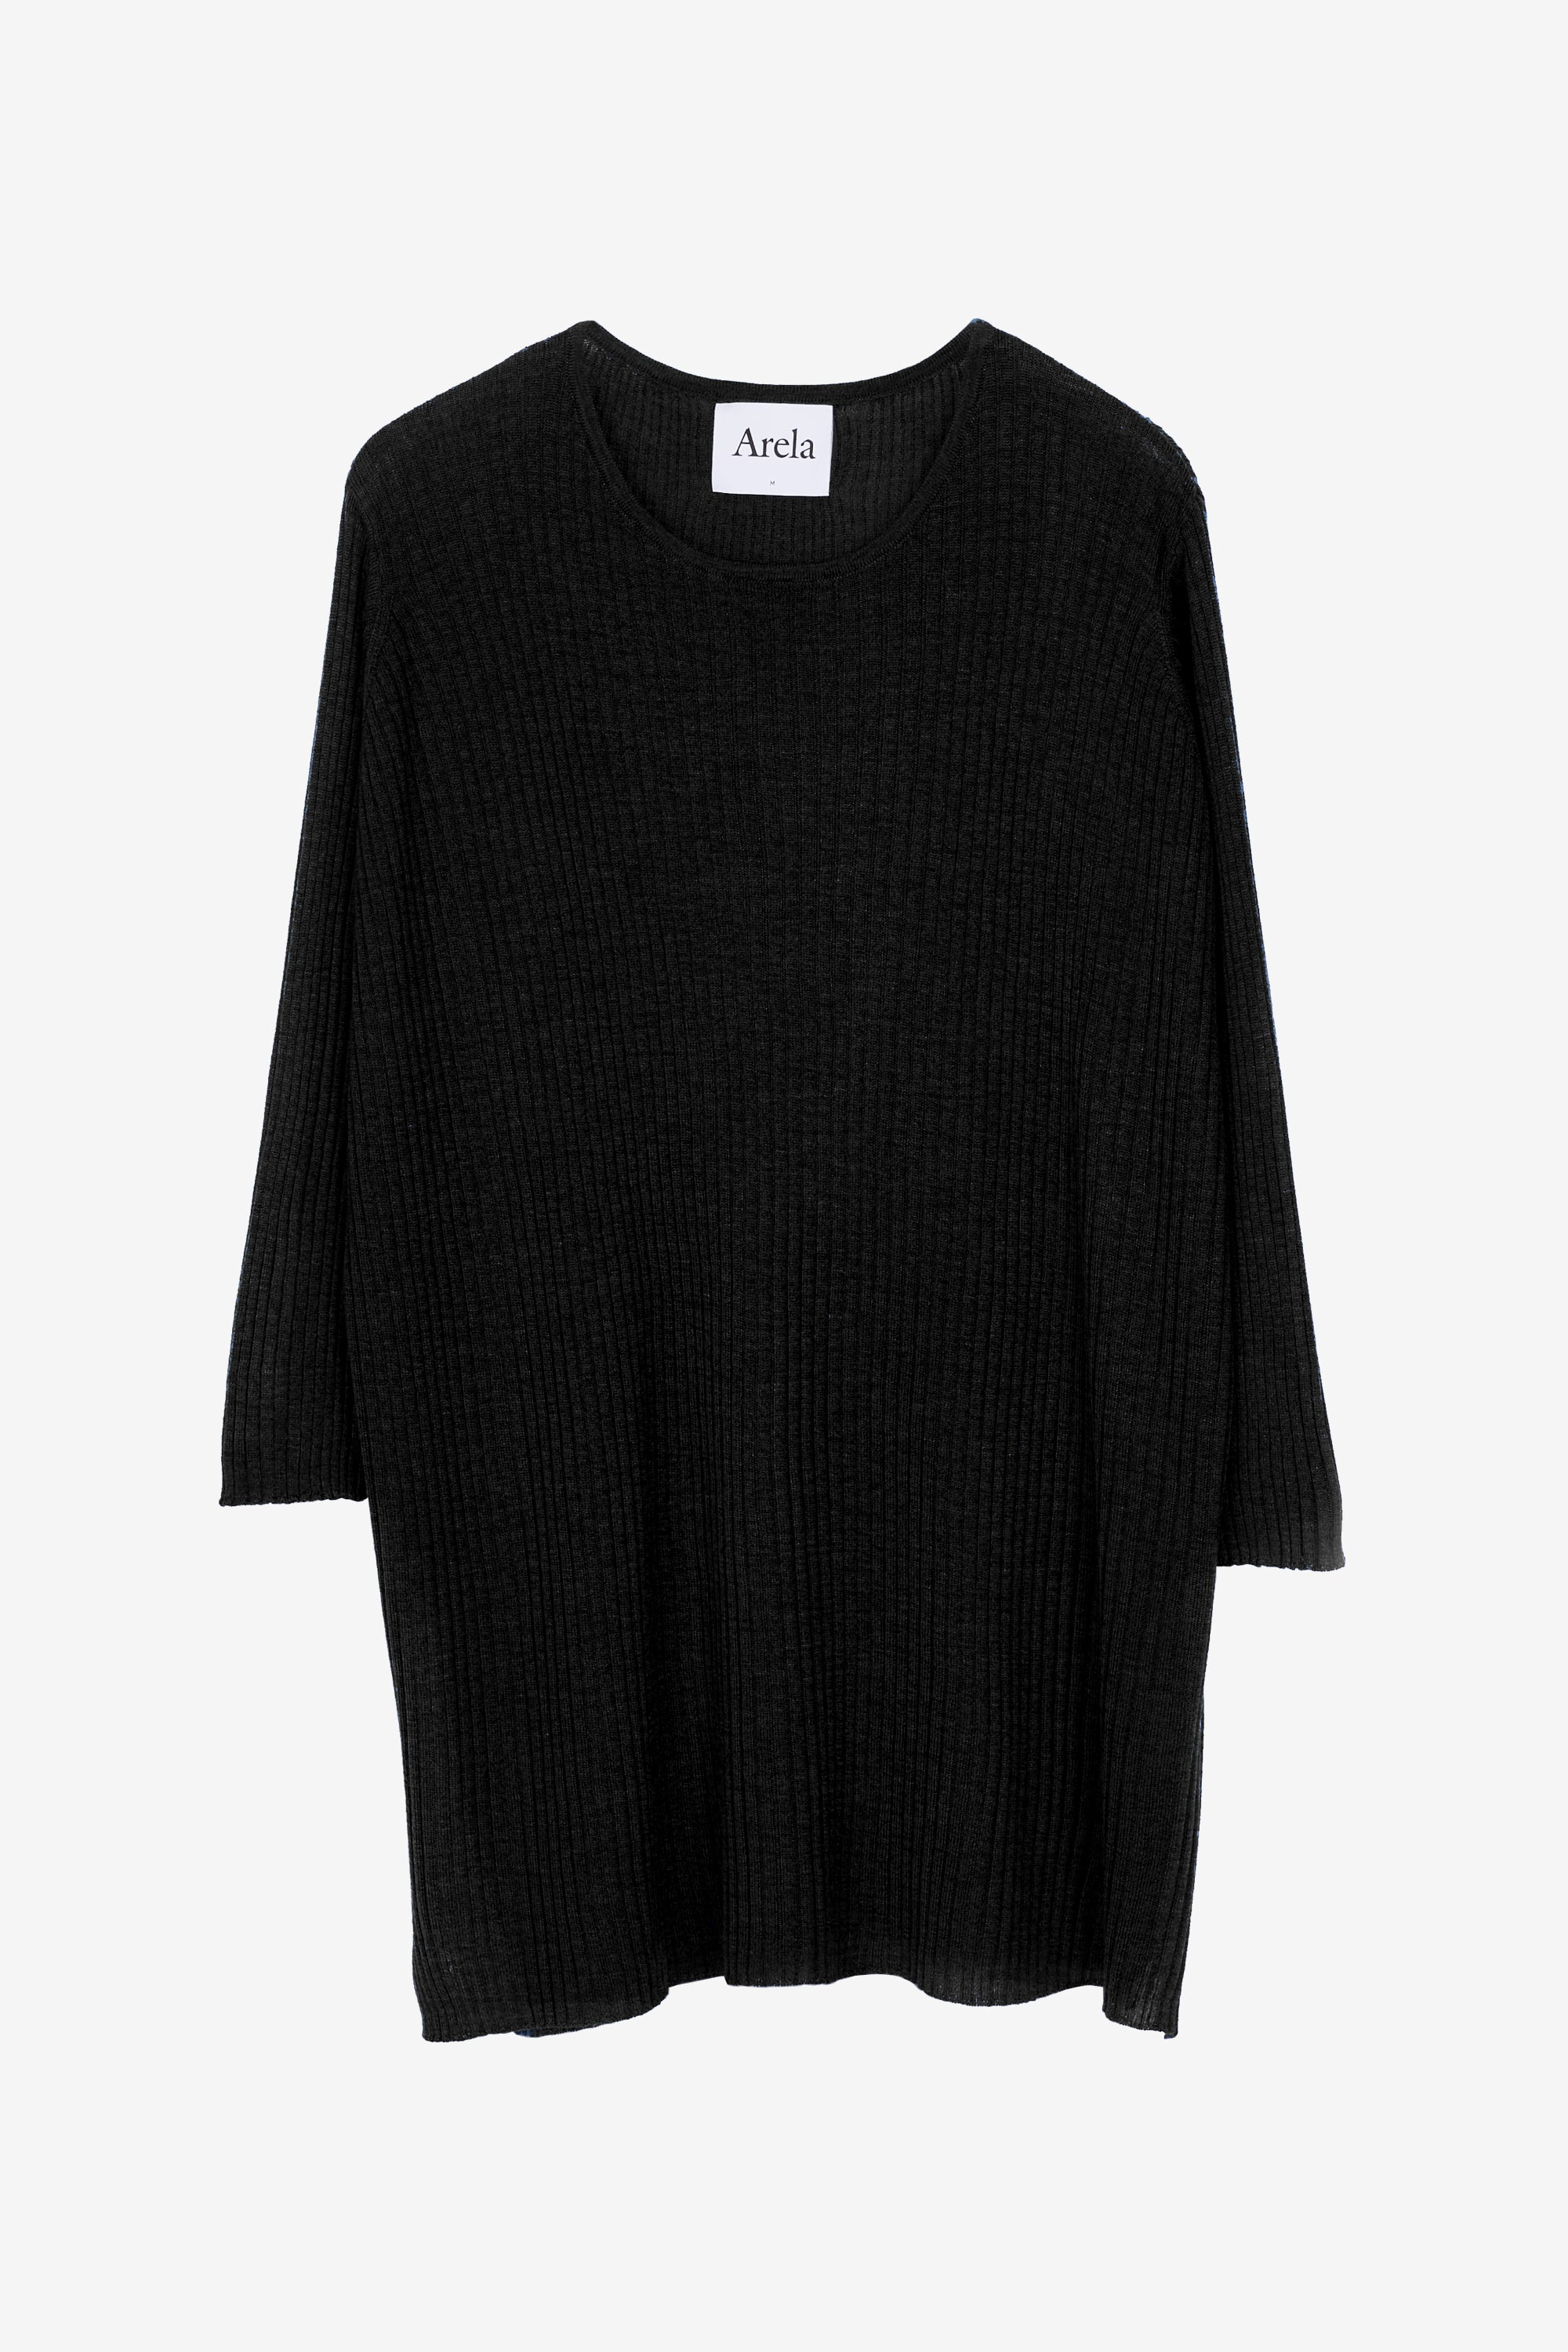 Leslie tunic in black